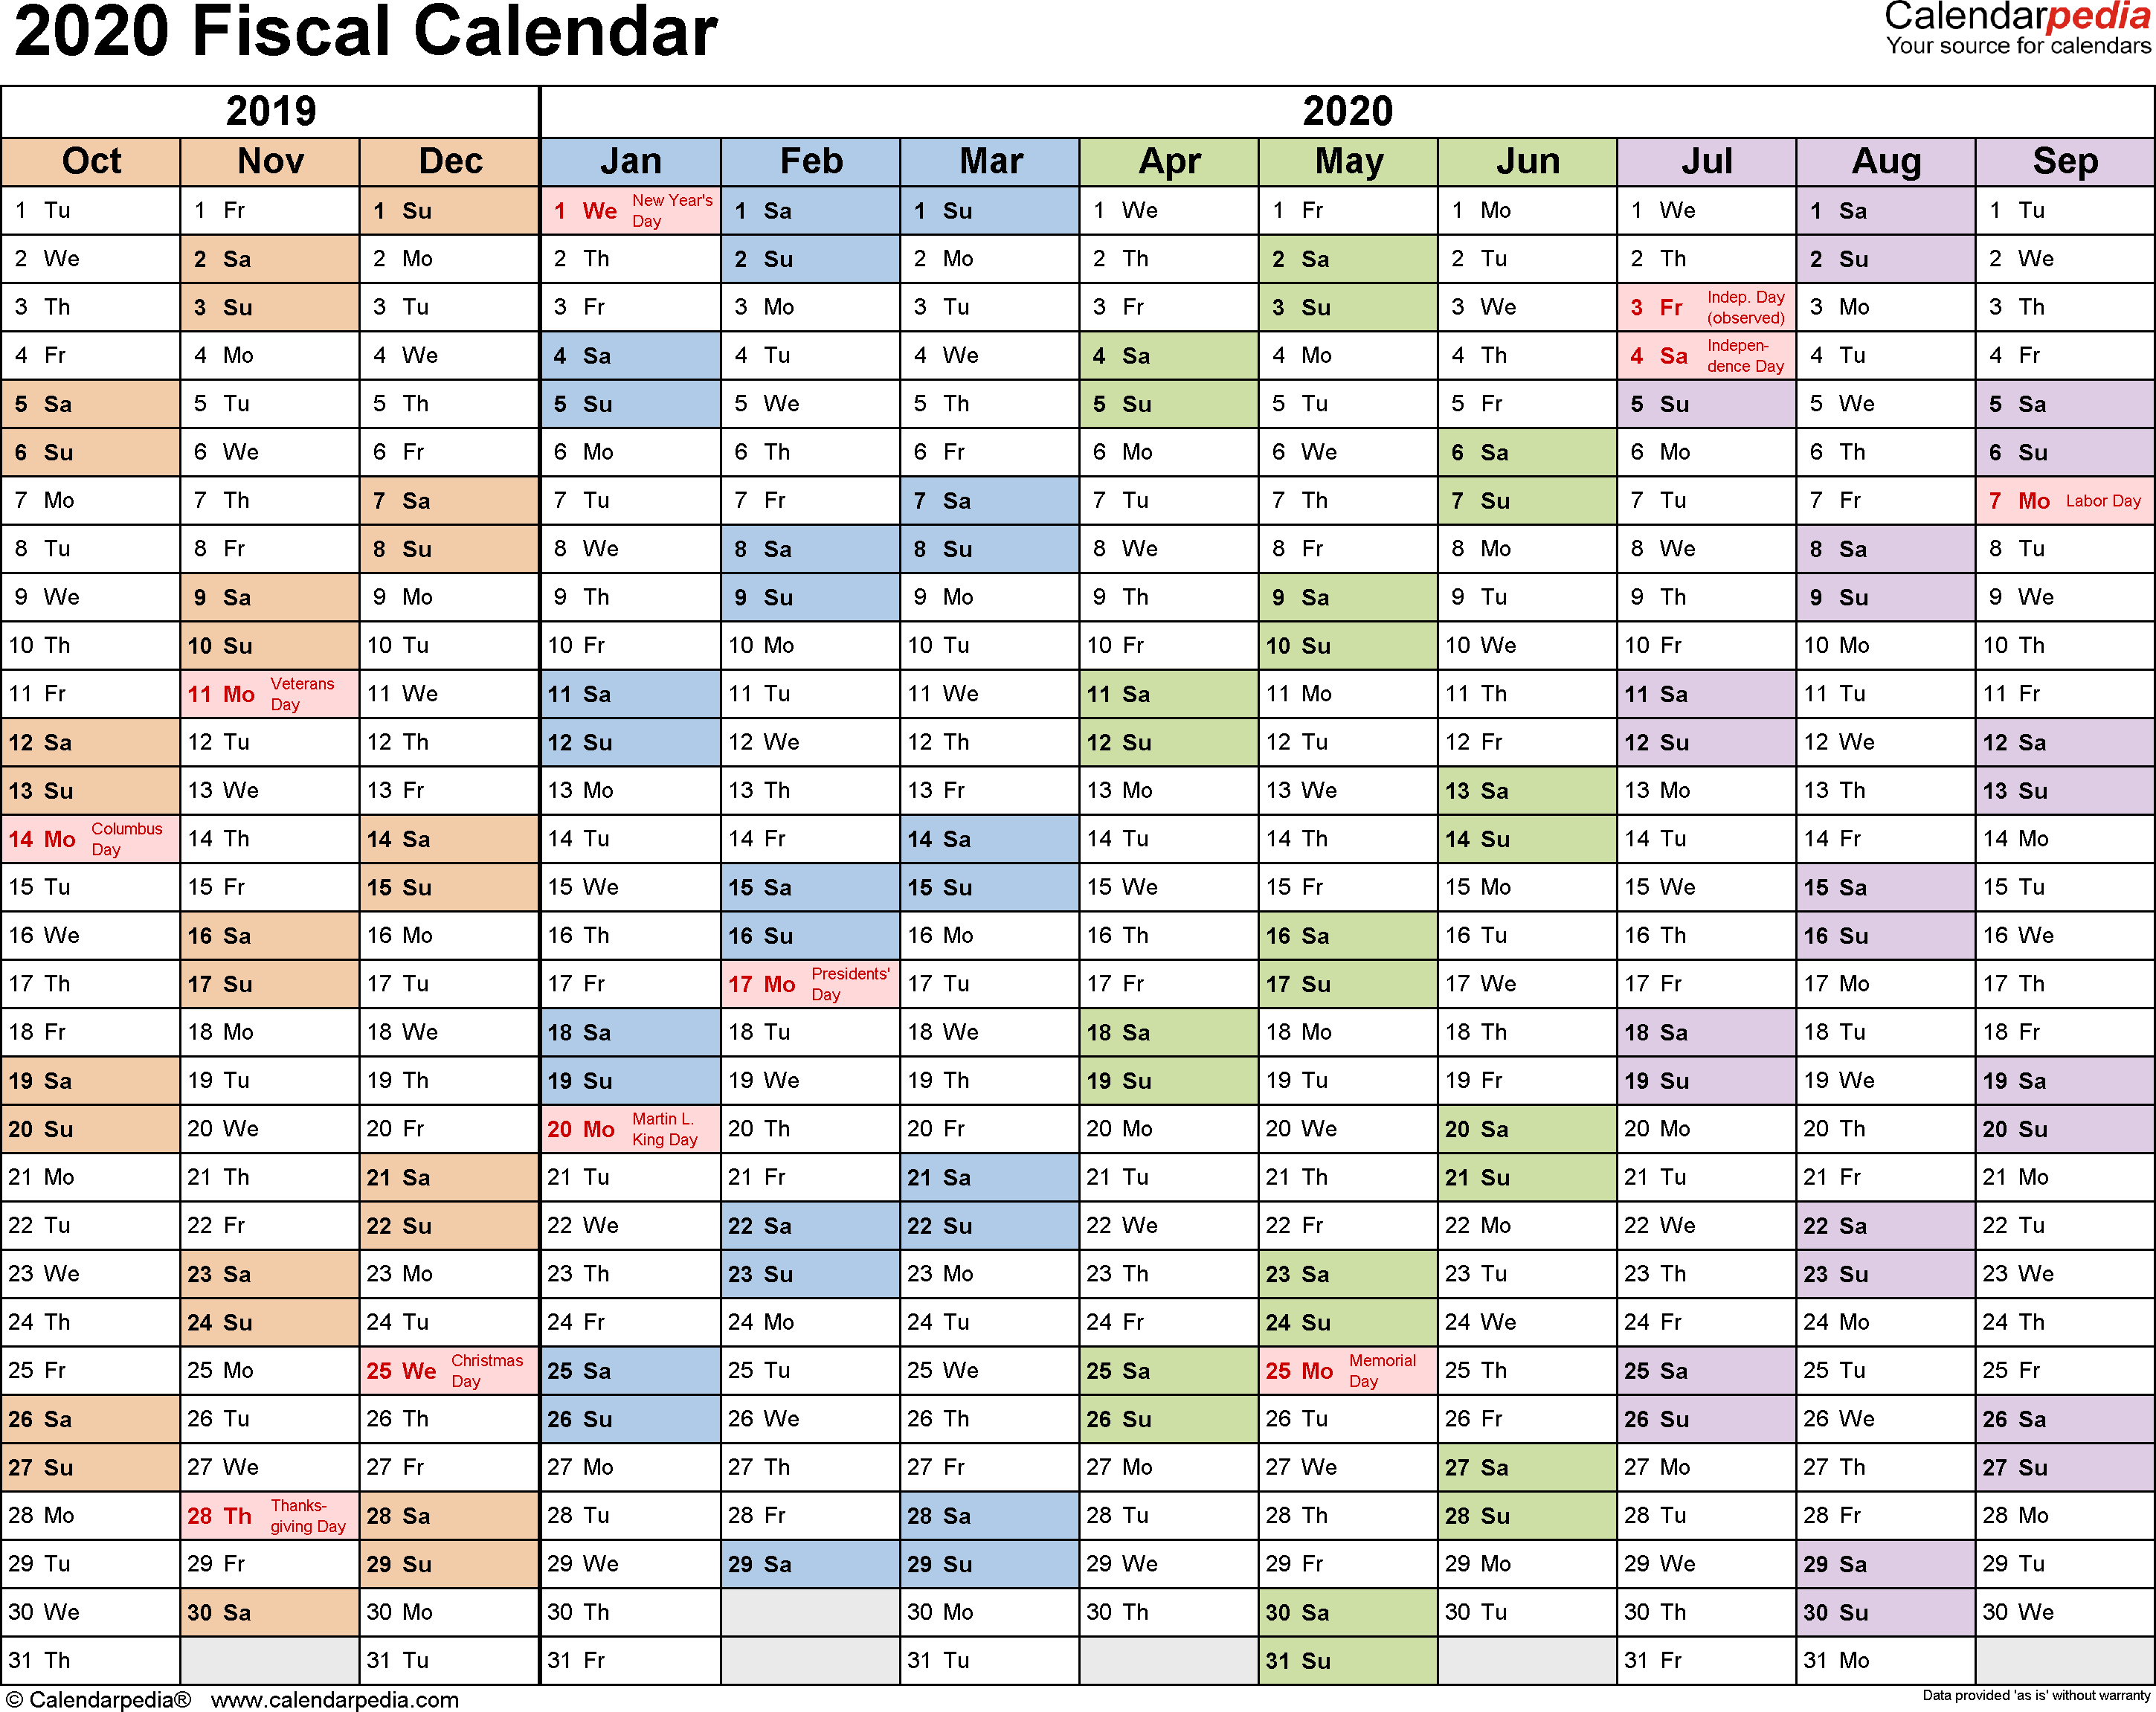 Fiscal Calendars 2020 - Free Printable Pdf Templates within 4 Weekly Payroll Calendar 2020